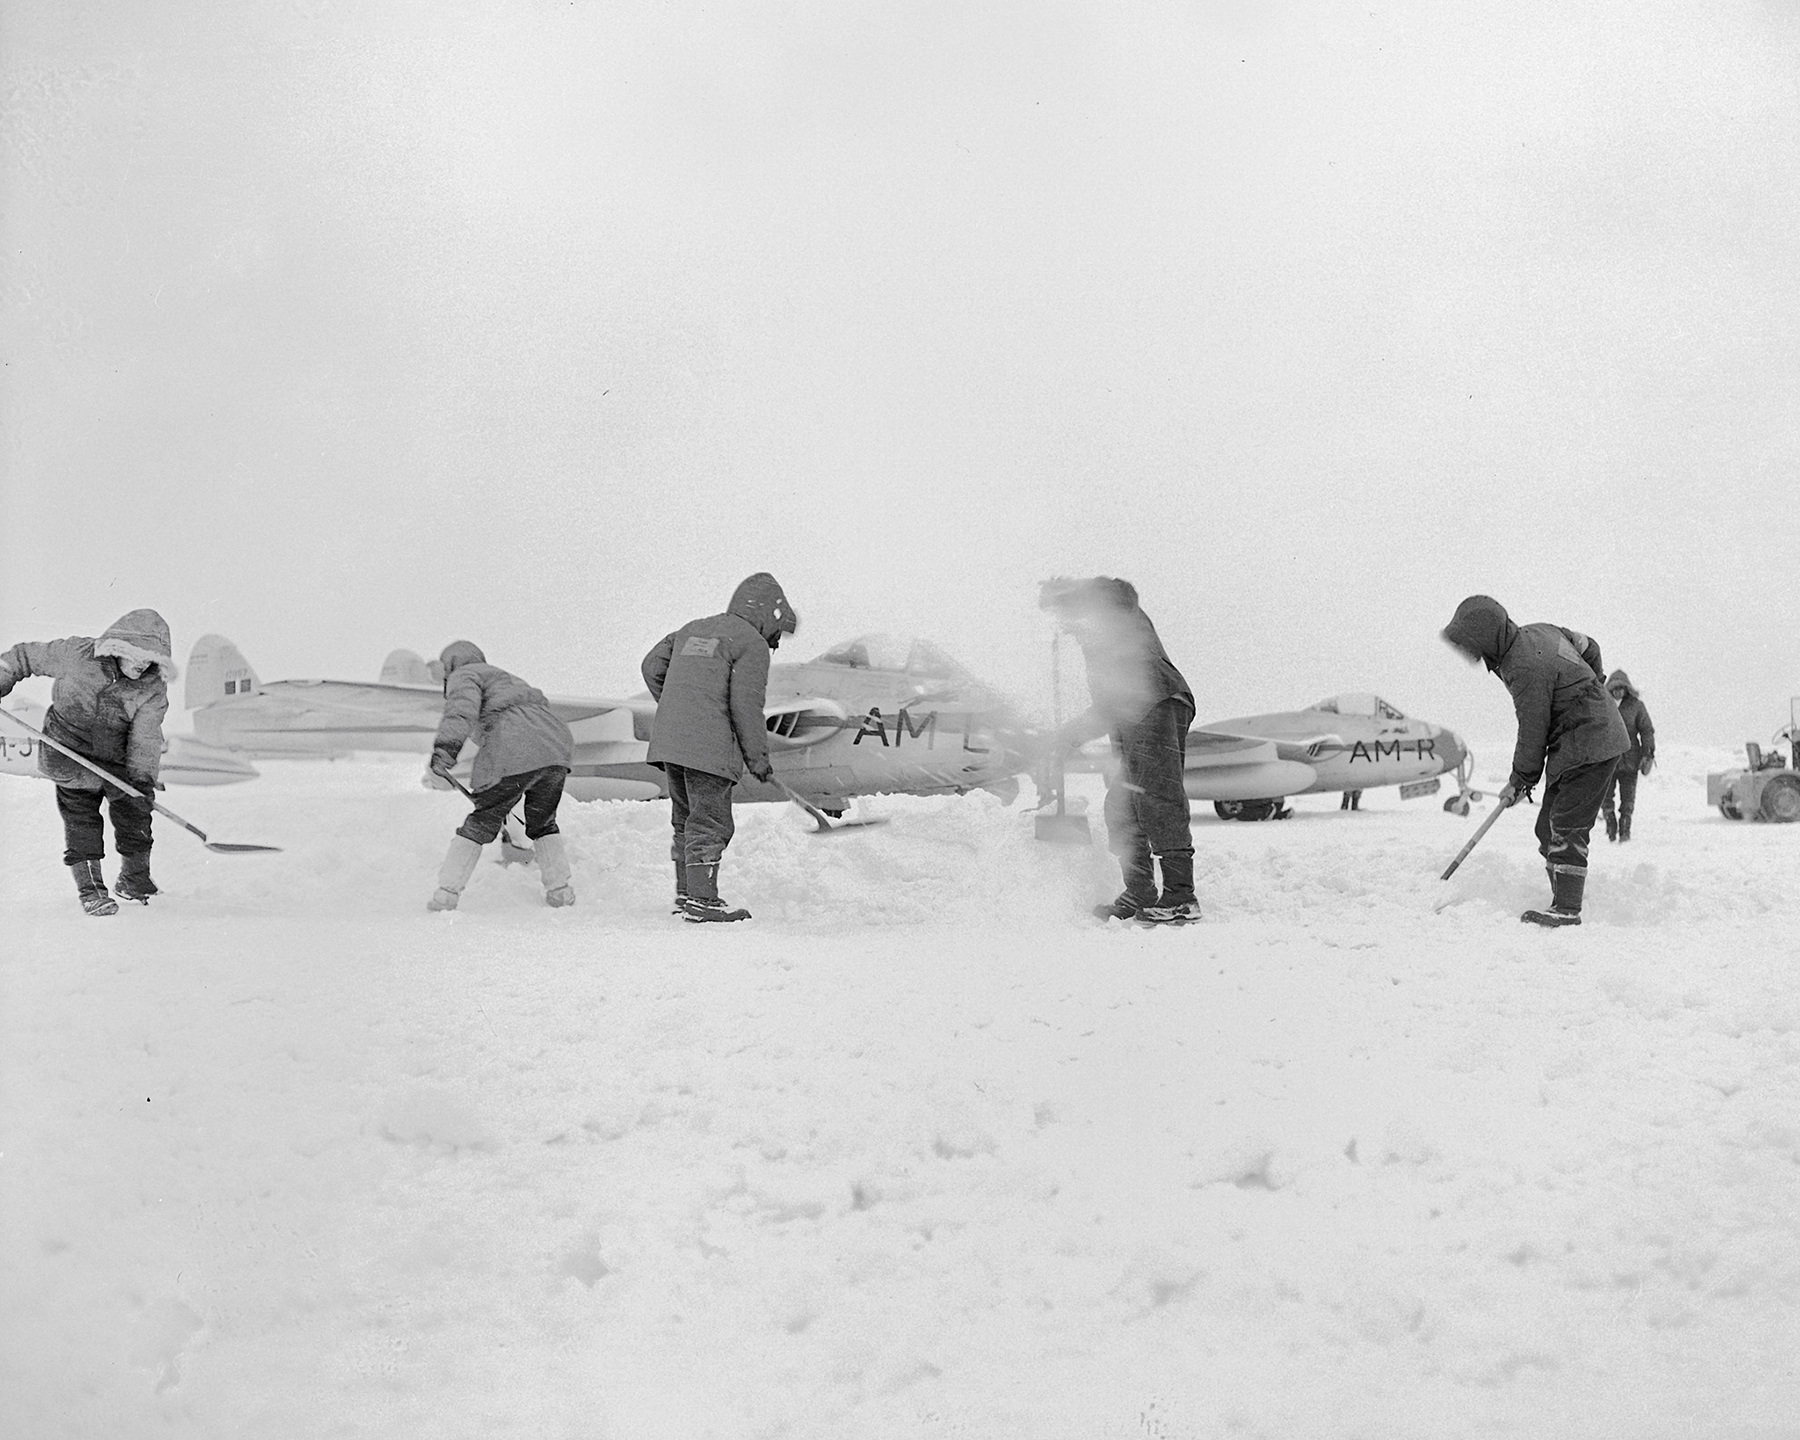 On February 14, 1950, at an undisclosed location, personnel spend St. Valentine's Day clearing snow away from Royal Canadian Air Force DH-100 Vampire aircraft. PHOTO: DND Archives, PL-50325